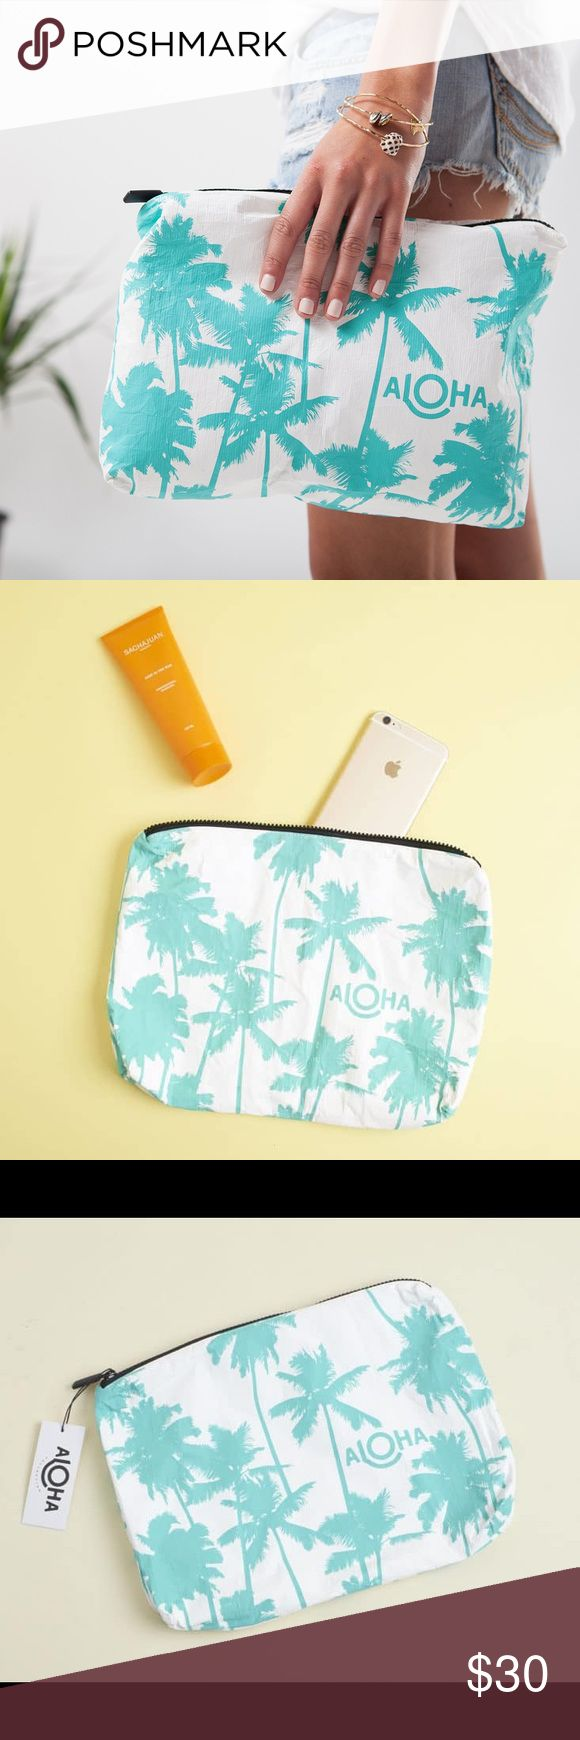 "Aloha Wet/Dry Bag  Brand new in packaging. Super cute! I live in sunny Seattle. I know someone else would be able to enjoy this gem more than I will. From Popsugar box June 2017. Take a little Kauai with you on your next adventure! This print was inspired by Kauai's coco palms and the famous Coco Palms Resort.   This pouch is perfect to use as a beach clutch.  Stow your sunscreen, sarong, and bikini, or pack toiletries for your next trip!  Mid-size pouch measures:  11.5"" across x 2"" wide x…"